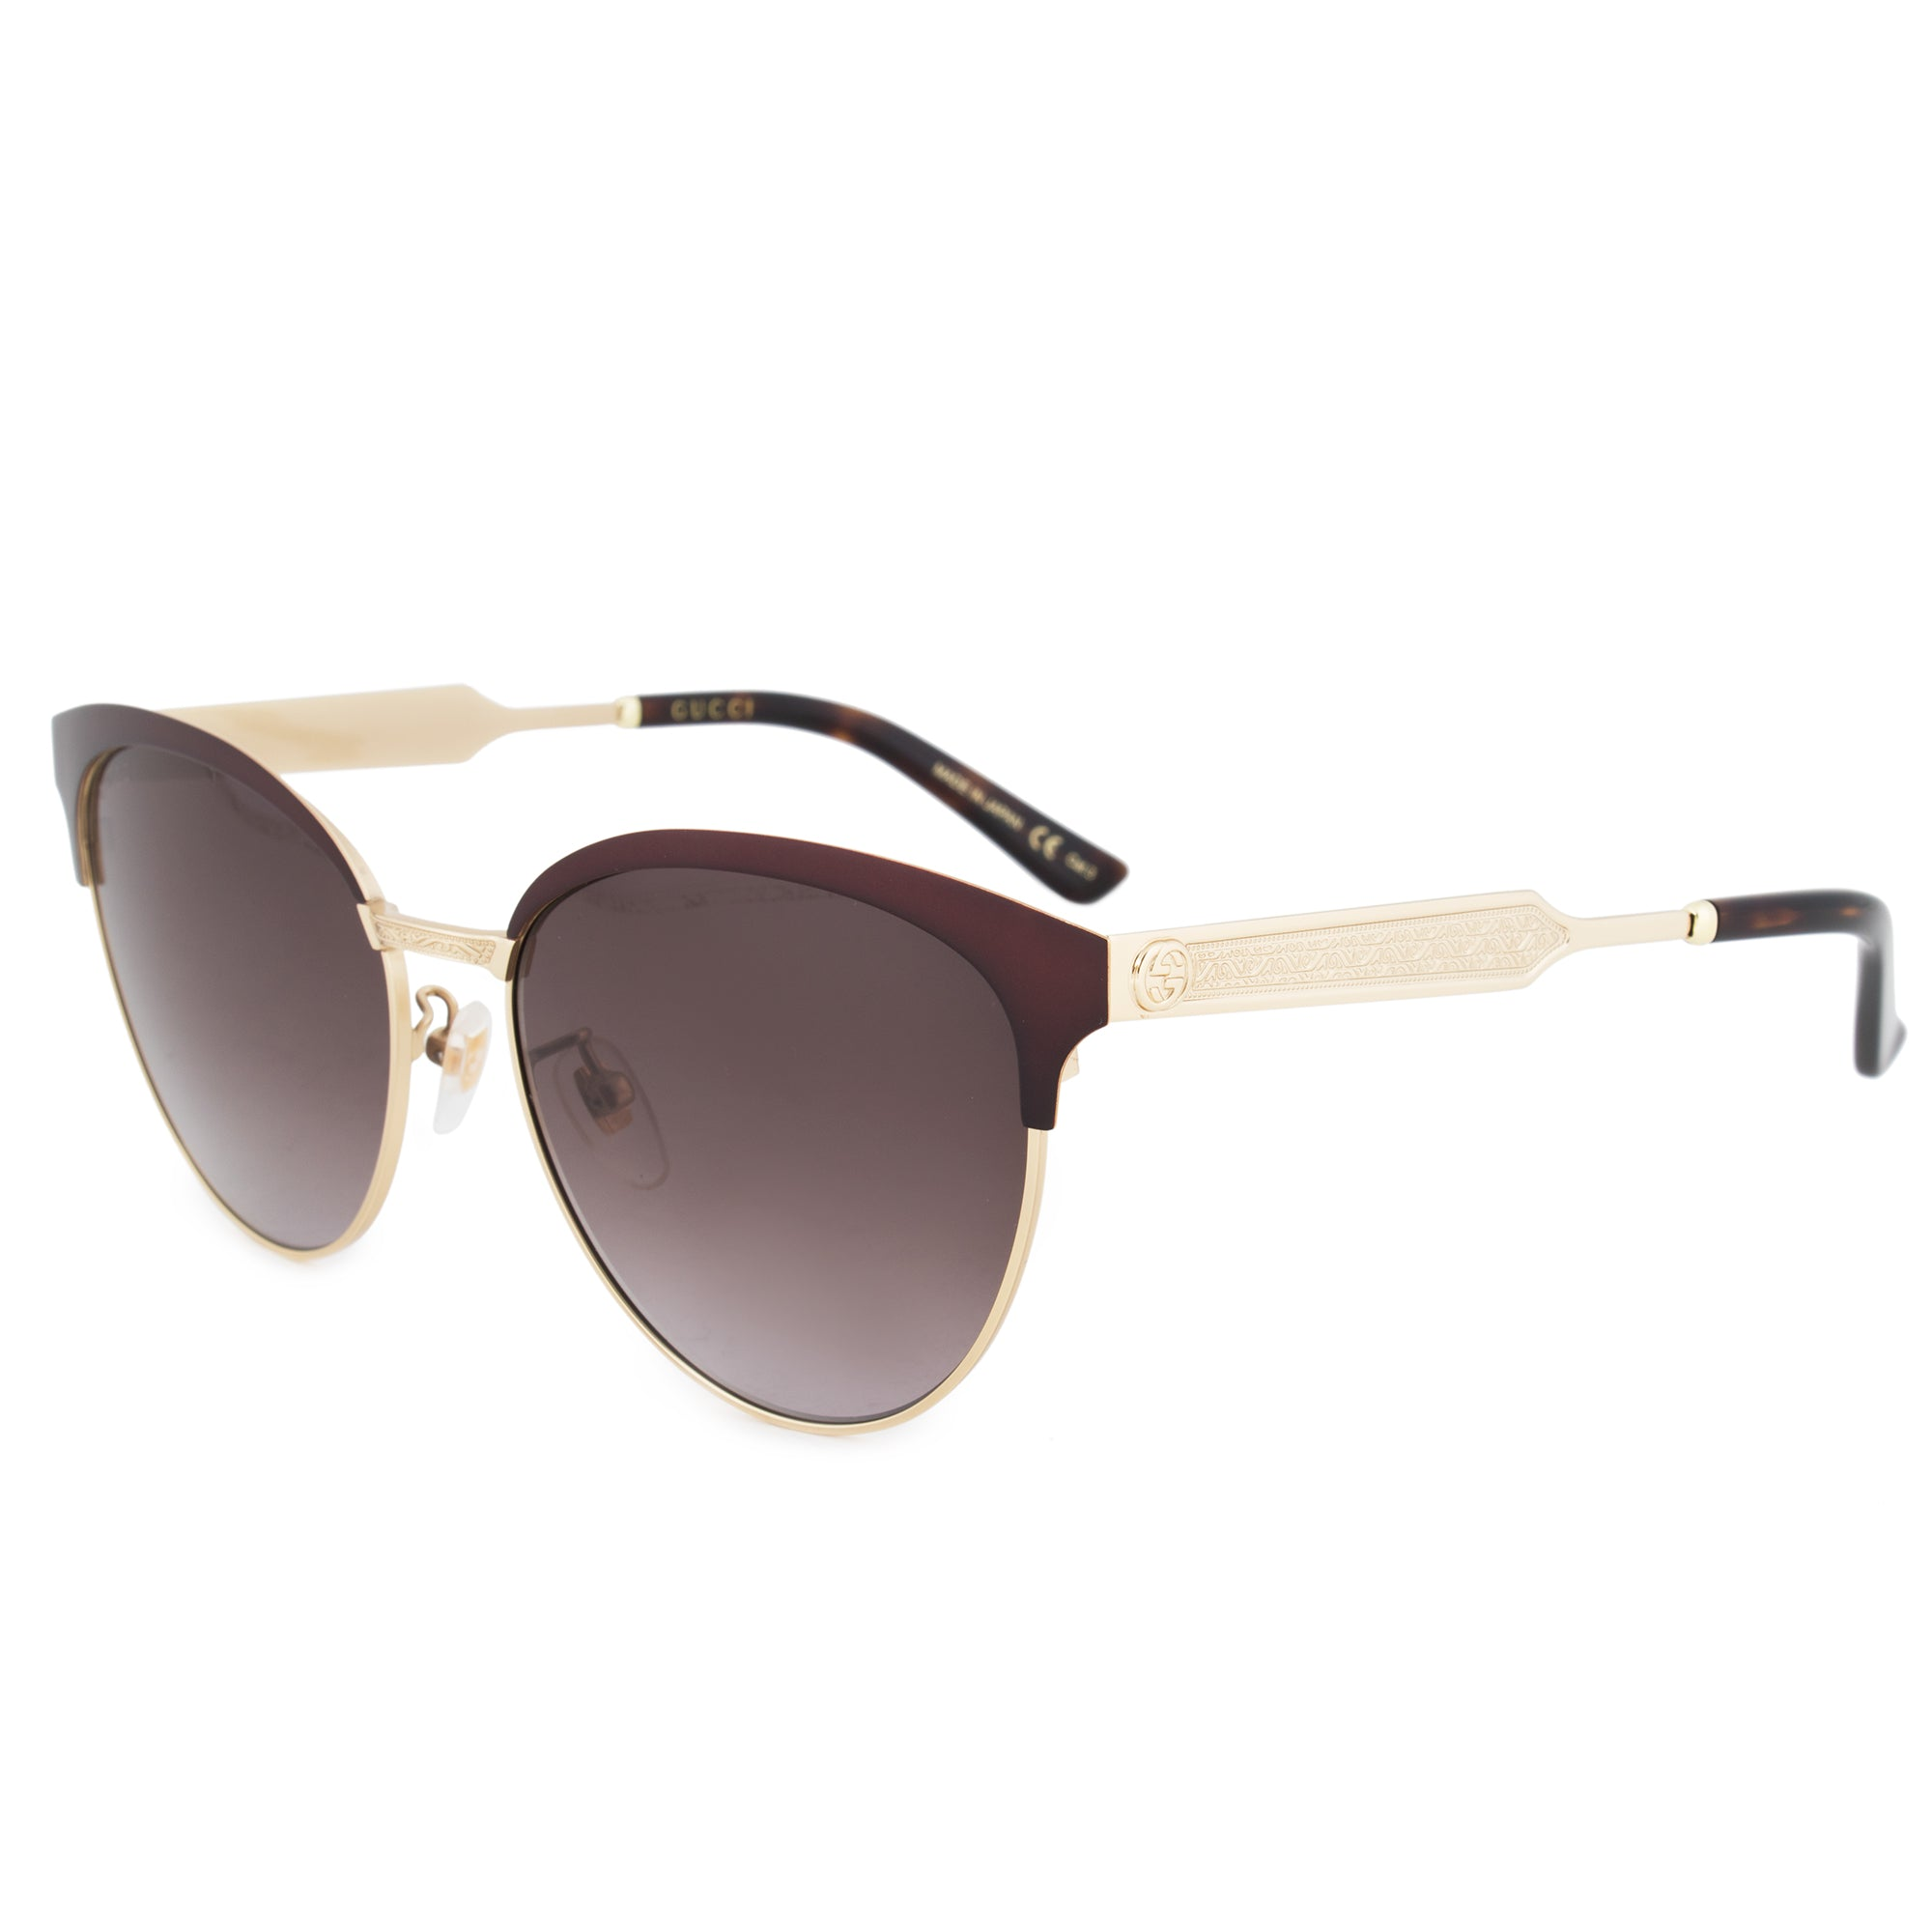 Gucci Gucci Cat Eye Sunglasses GG0074S 004 57